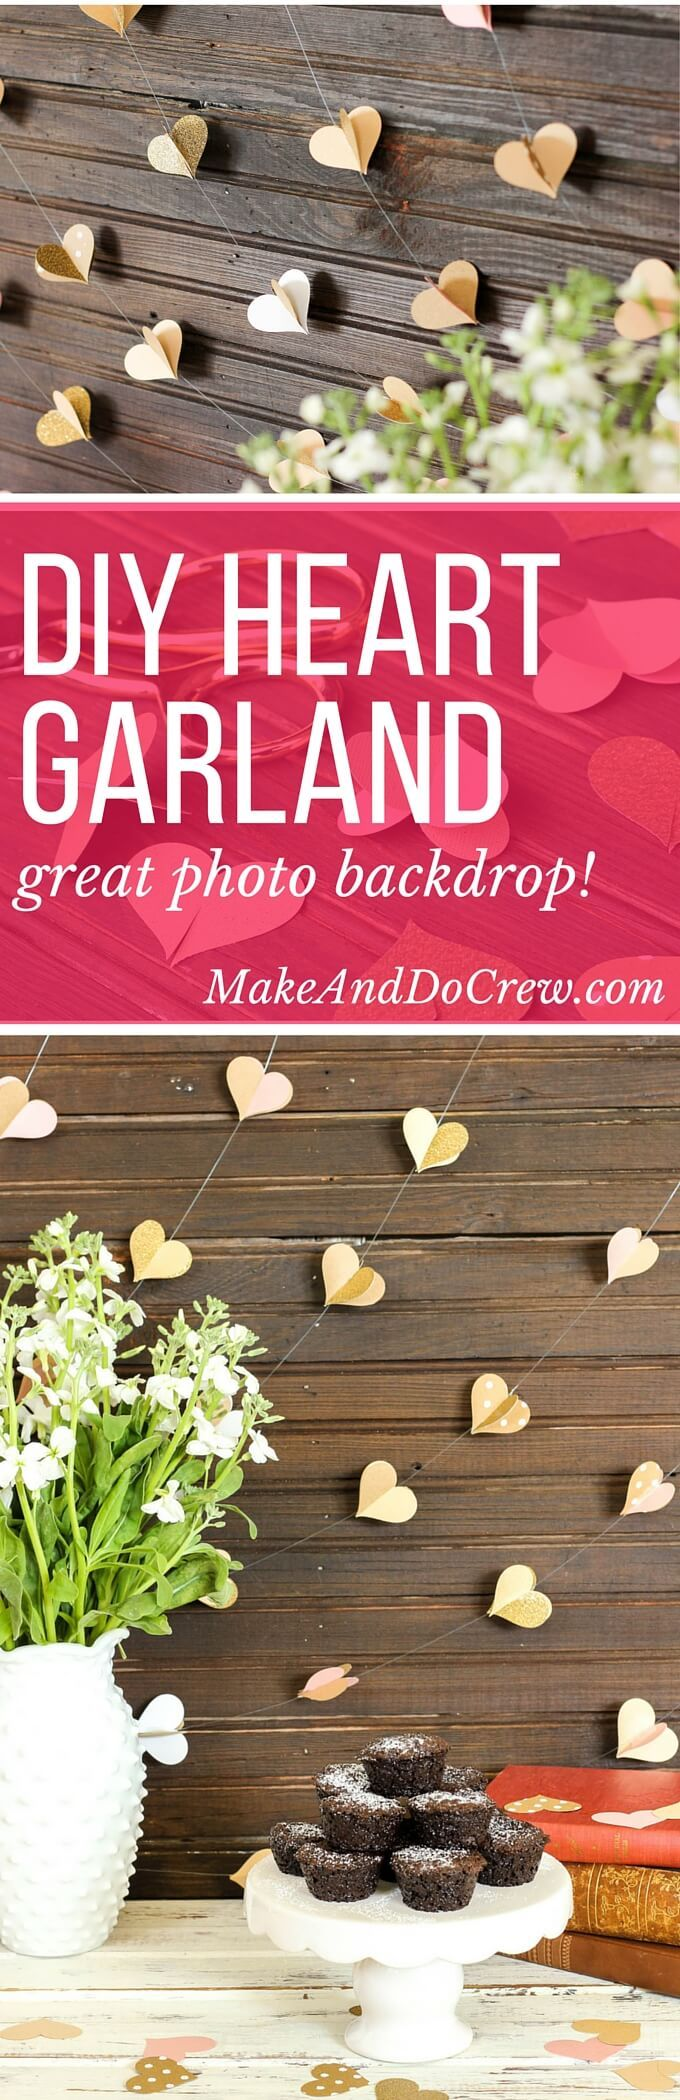 This handmade paper heart garland also adds beautiful texture and a hint of charm as a wedding photo booth backdrop. It makes a super sweet DIY Valentine's Day decor idea, too! Bonus: easy craft project to use up your scrapbooking paper scraps! Click to view full tutorial. | MakeAndDoCrew.com via @makeanddocrew